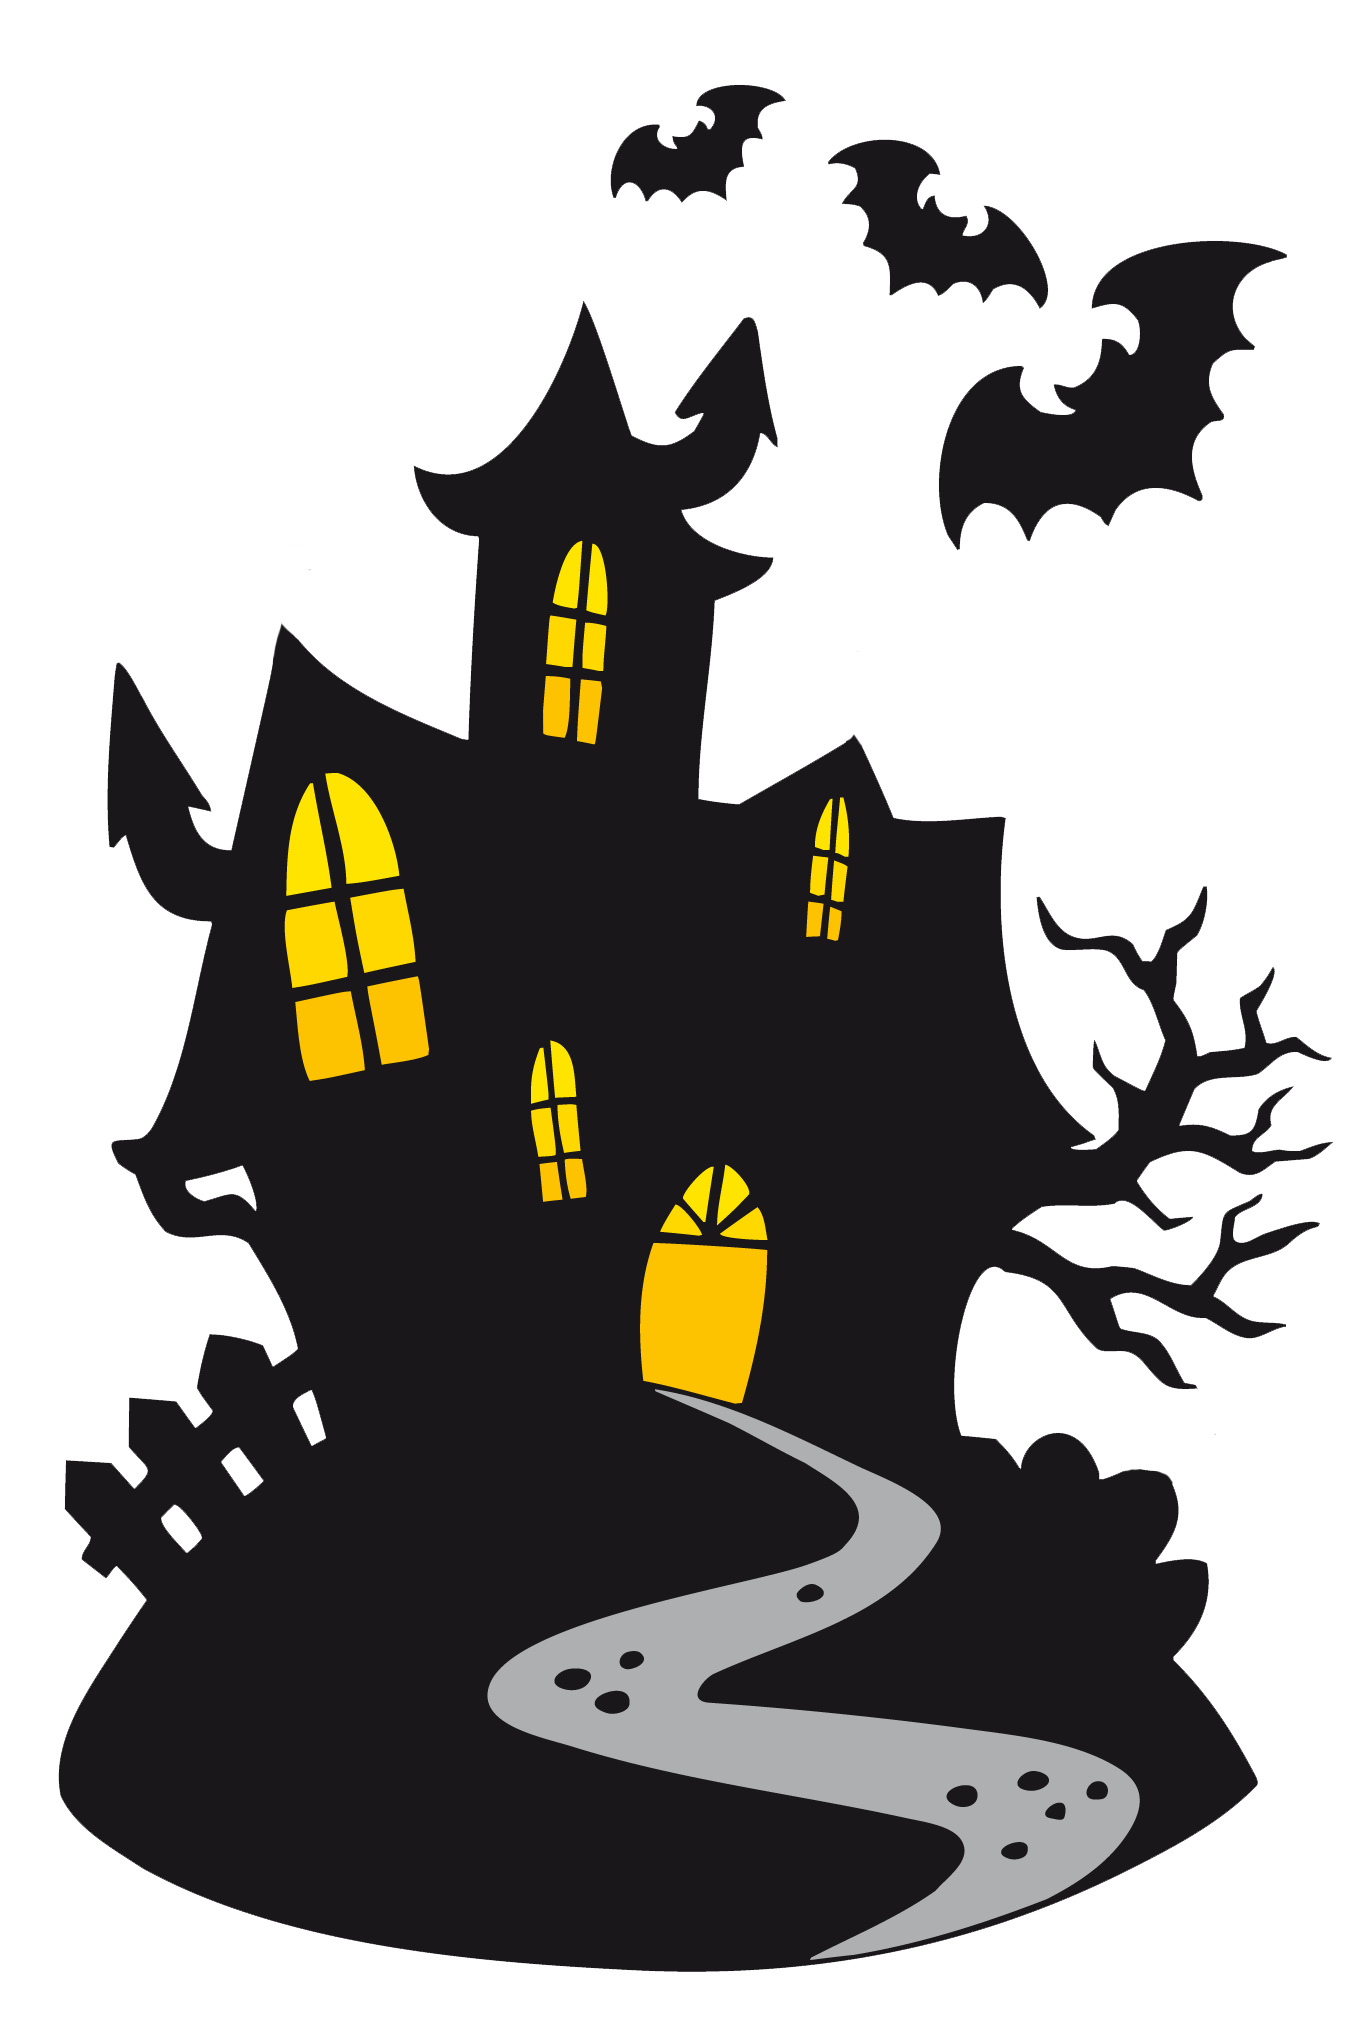 Haunted house silhouette clipart image royalty free download Happy Halloween Clipart Scary | Happy Halloween | Pinterest ... image royalty free download